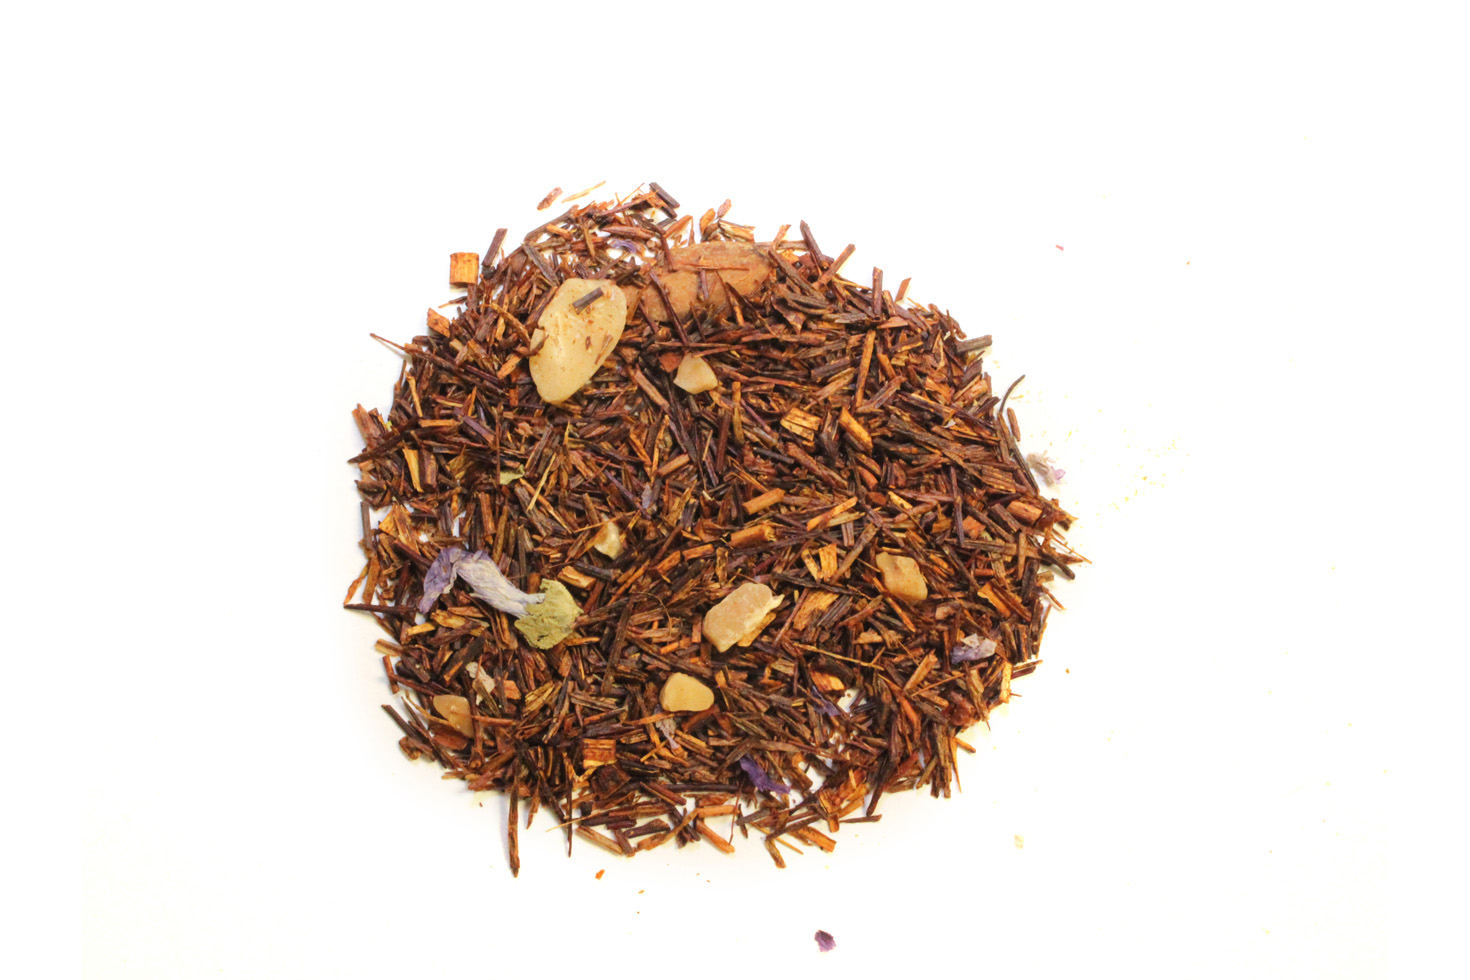 ROOIBOS #5 ALMOND ROCKER Tisane #05 001 1